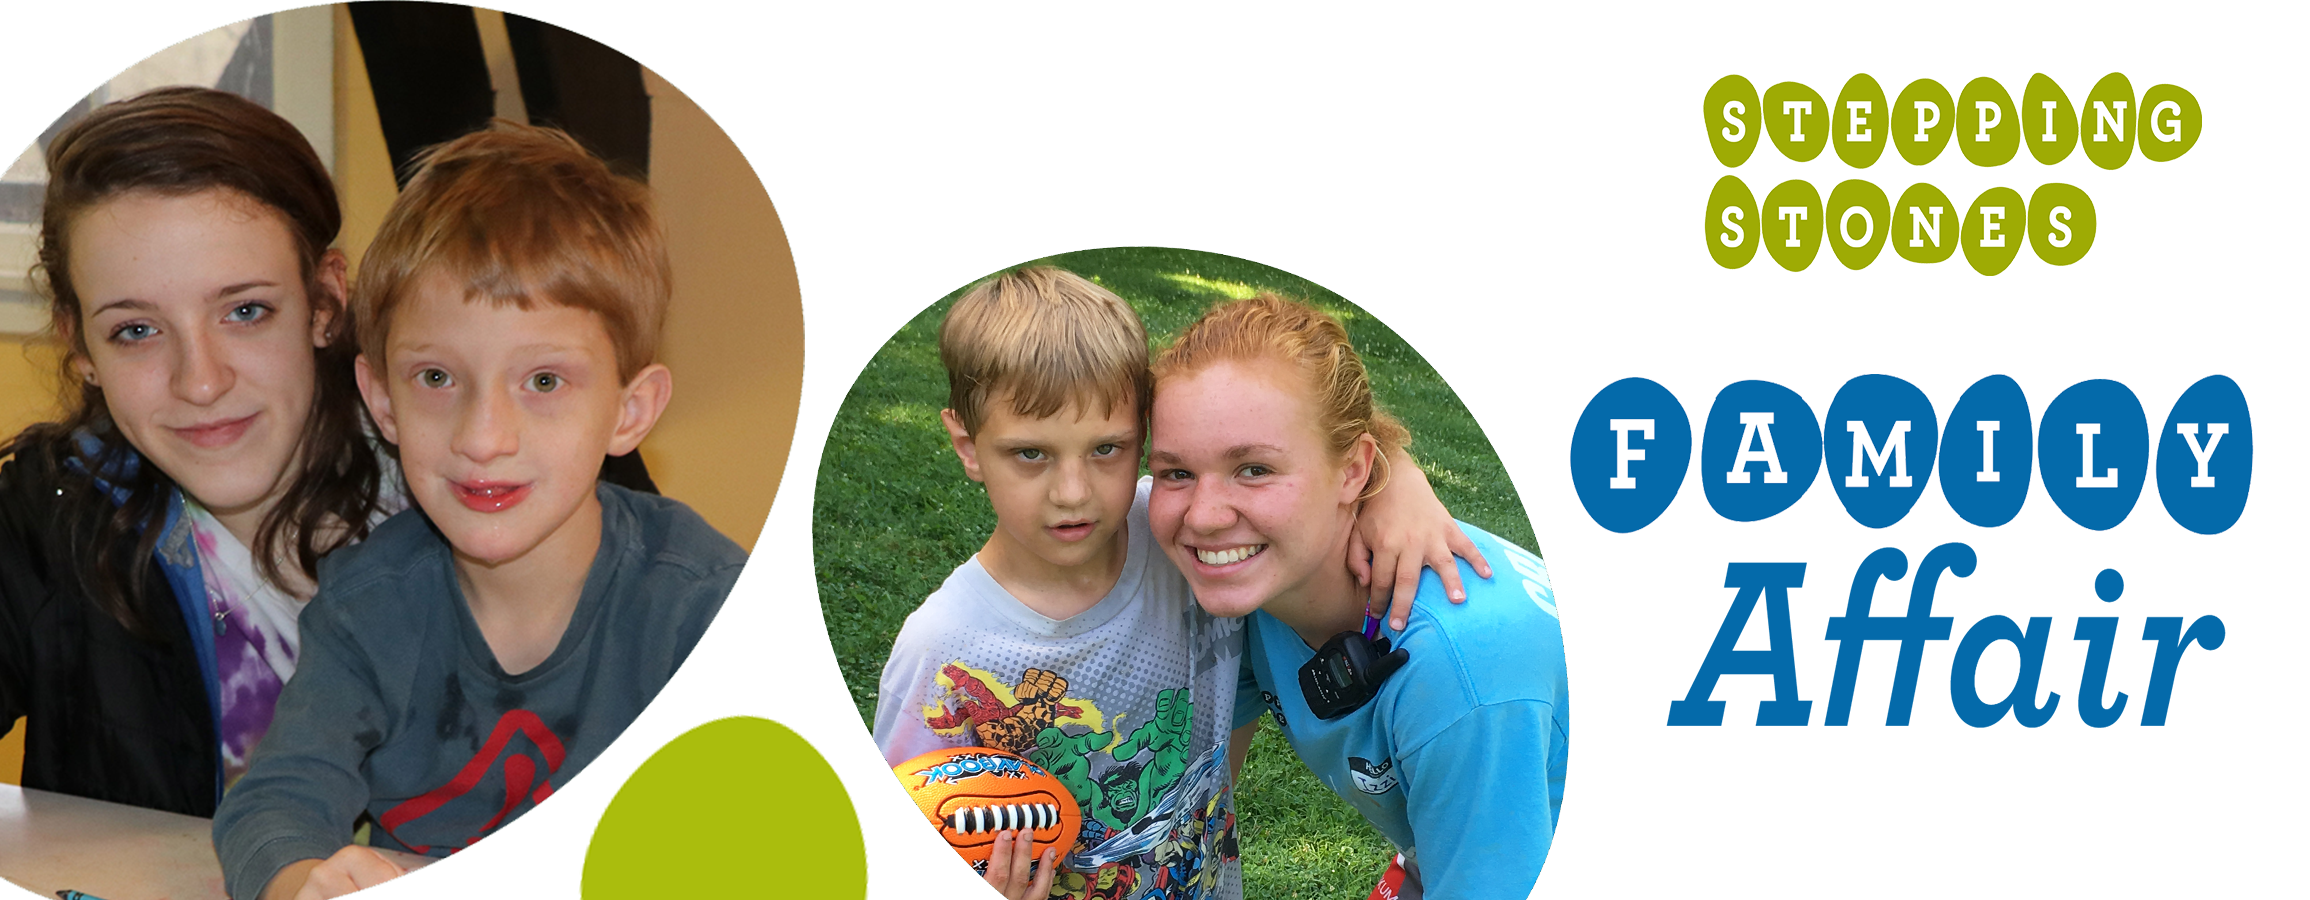 Stepping Stones Programs Support People with Disabilities I Make a year-end gift that will serve families across Greater Cincinnati, Ohio